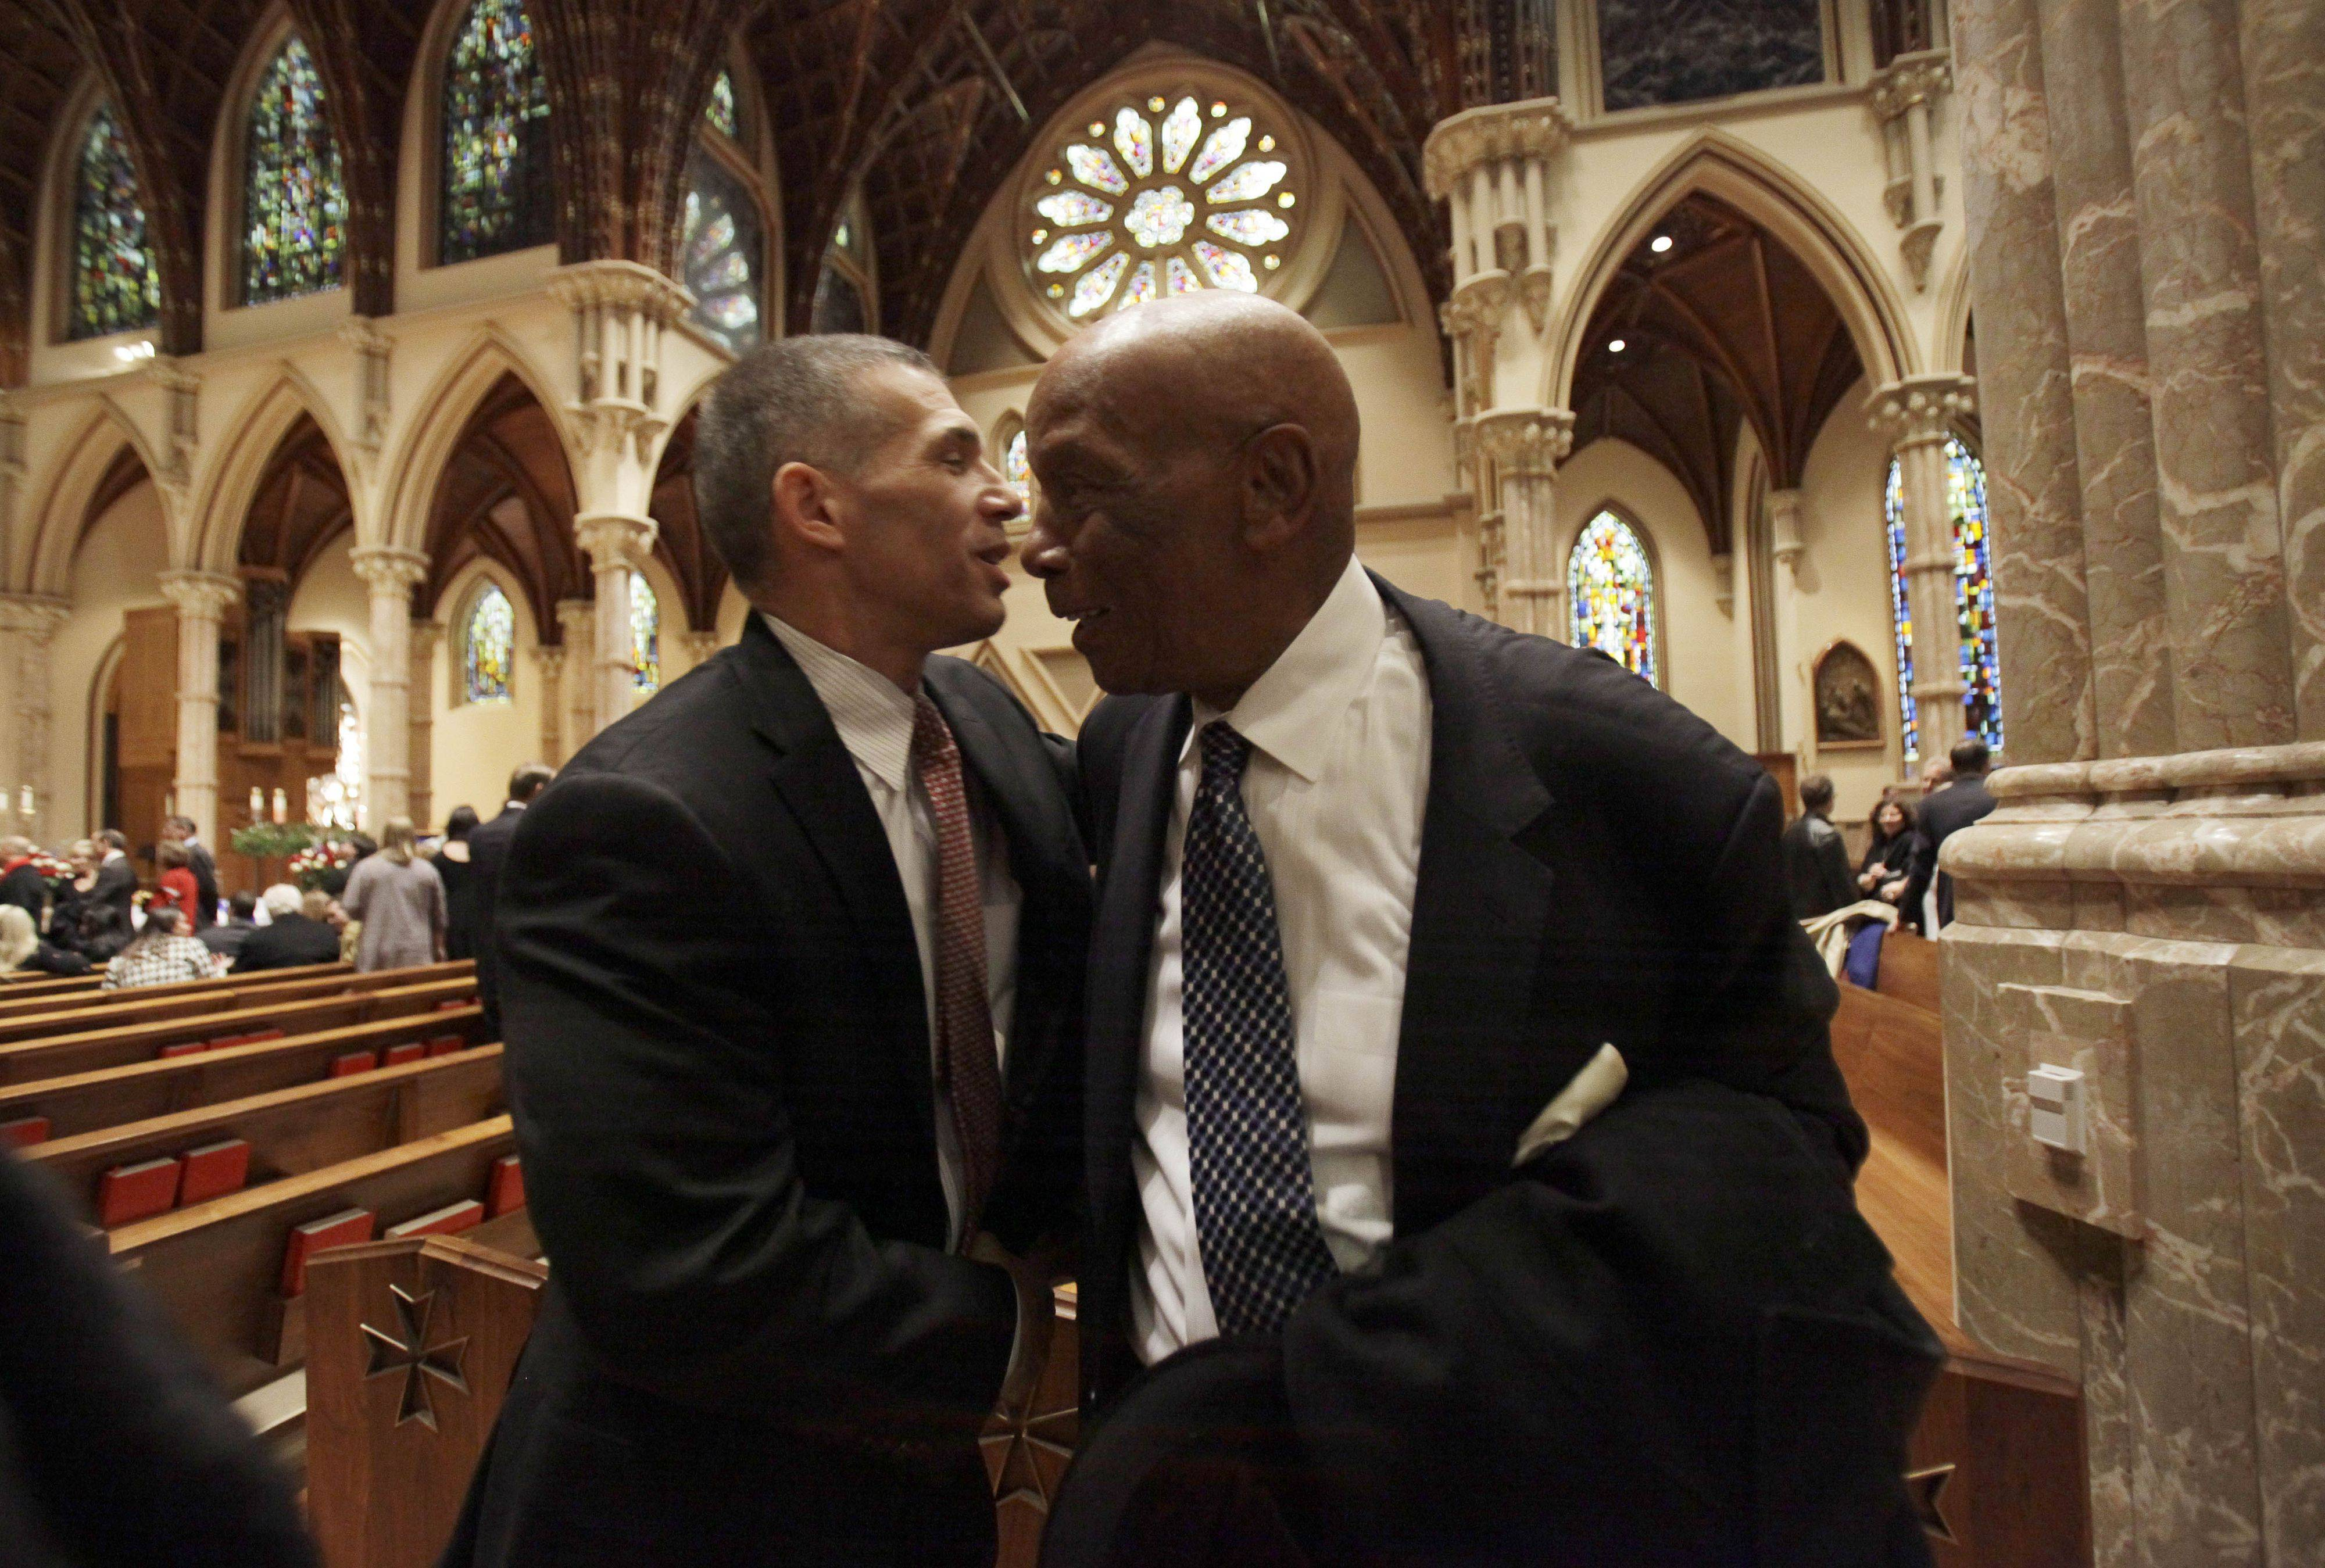 New York Yankees manager Joe Girardi, left, hugs Chicago Cubs great Ernie Banks during the visitation for Chicago Cubs great and longtime radio announcer Ron Santo at Holy Name Cathedral, Thursday, Dec. 9, 2010, in Chicago. Santo, a nine-time all-star, died Thursday, Dec. 2 in an Arizona hospital from complication of bladder cancer. He was 70. (AP Photo/Nam Y. Huh, Pool)